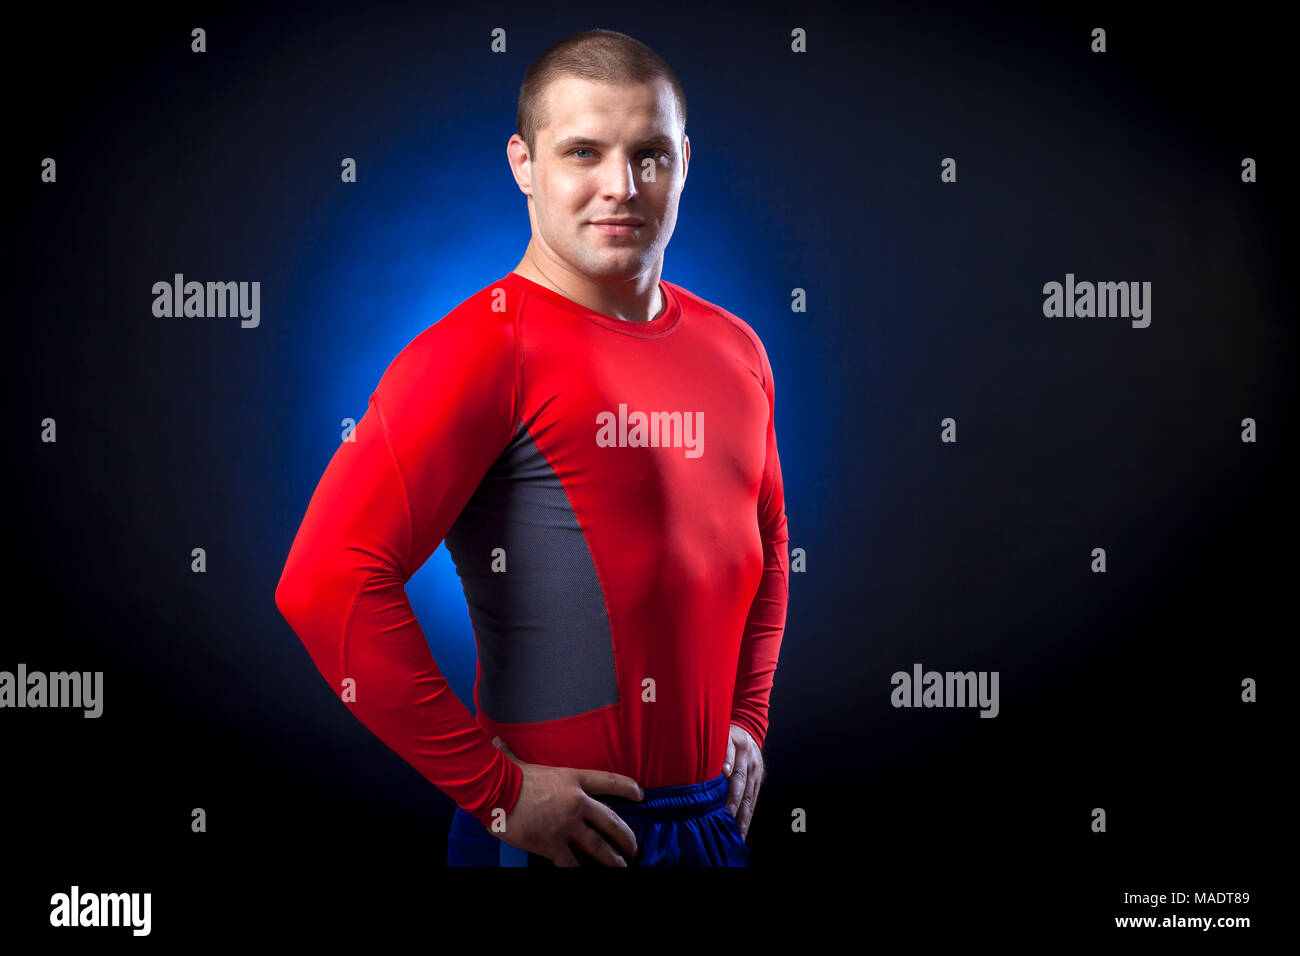 A strong dark-haired sportman  in a red sports wear  rush guard posing against a blue a lights on a black isolated  background - Stock Image